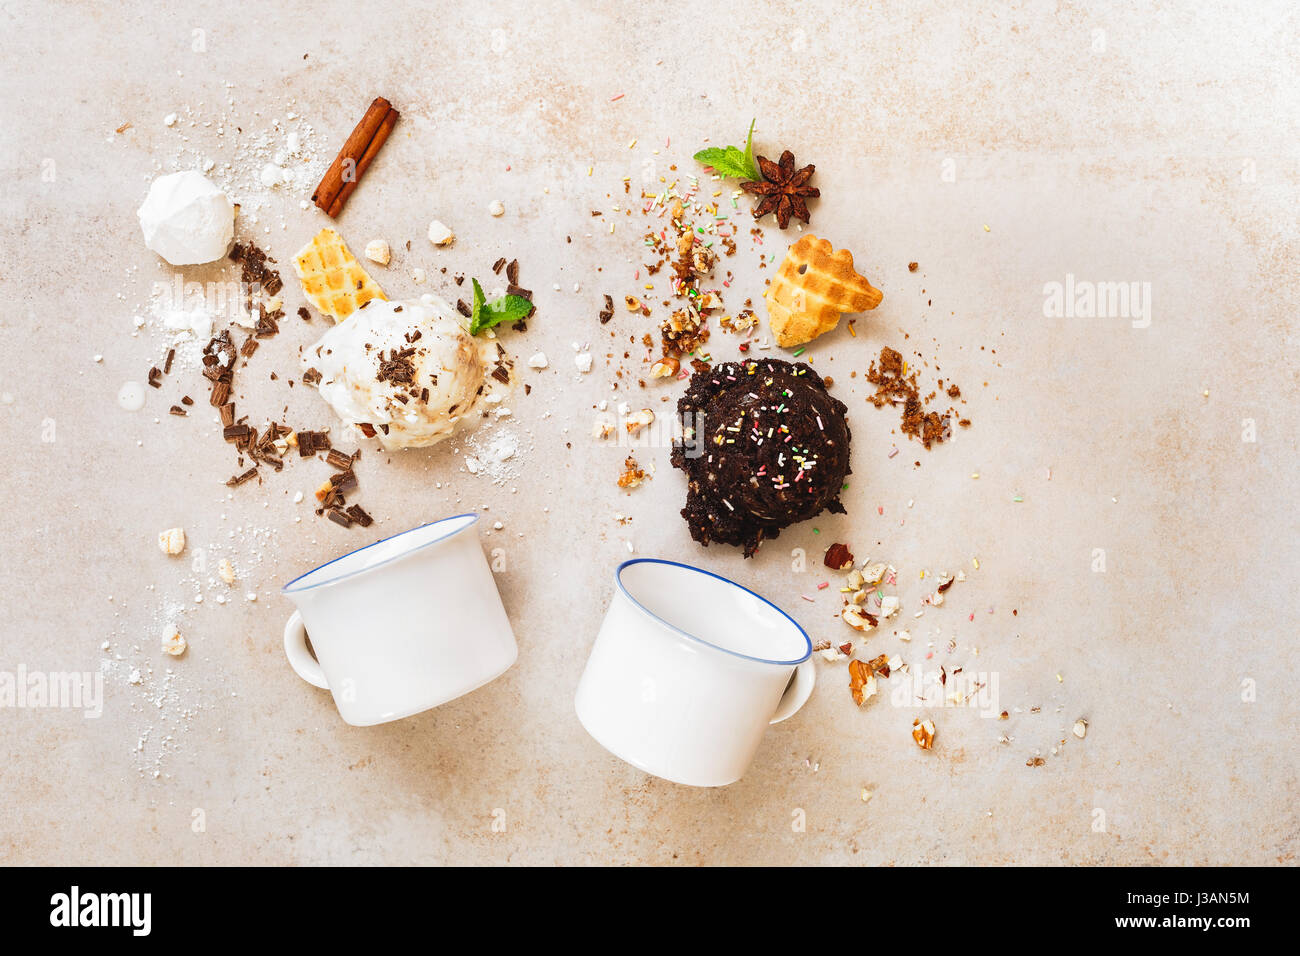 Scoops of ice cream in a variety of delicious and ingredients with two enamel mugs, flat lay Stock Photo